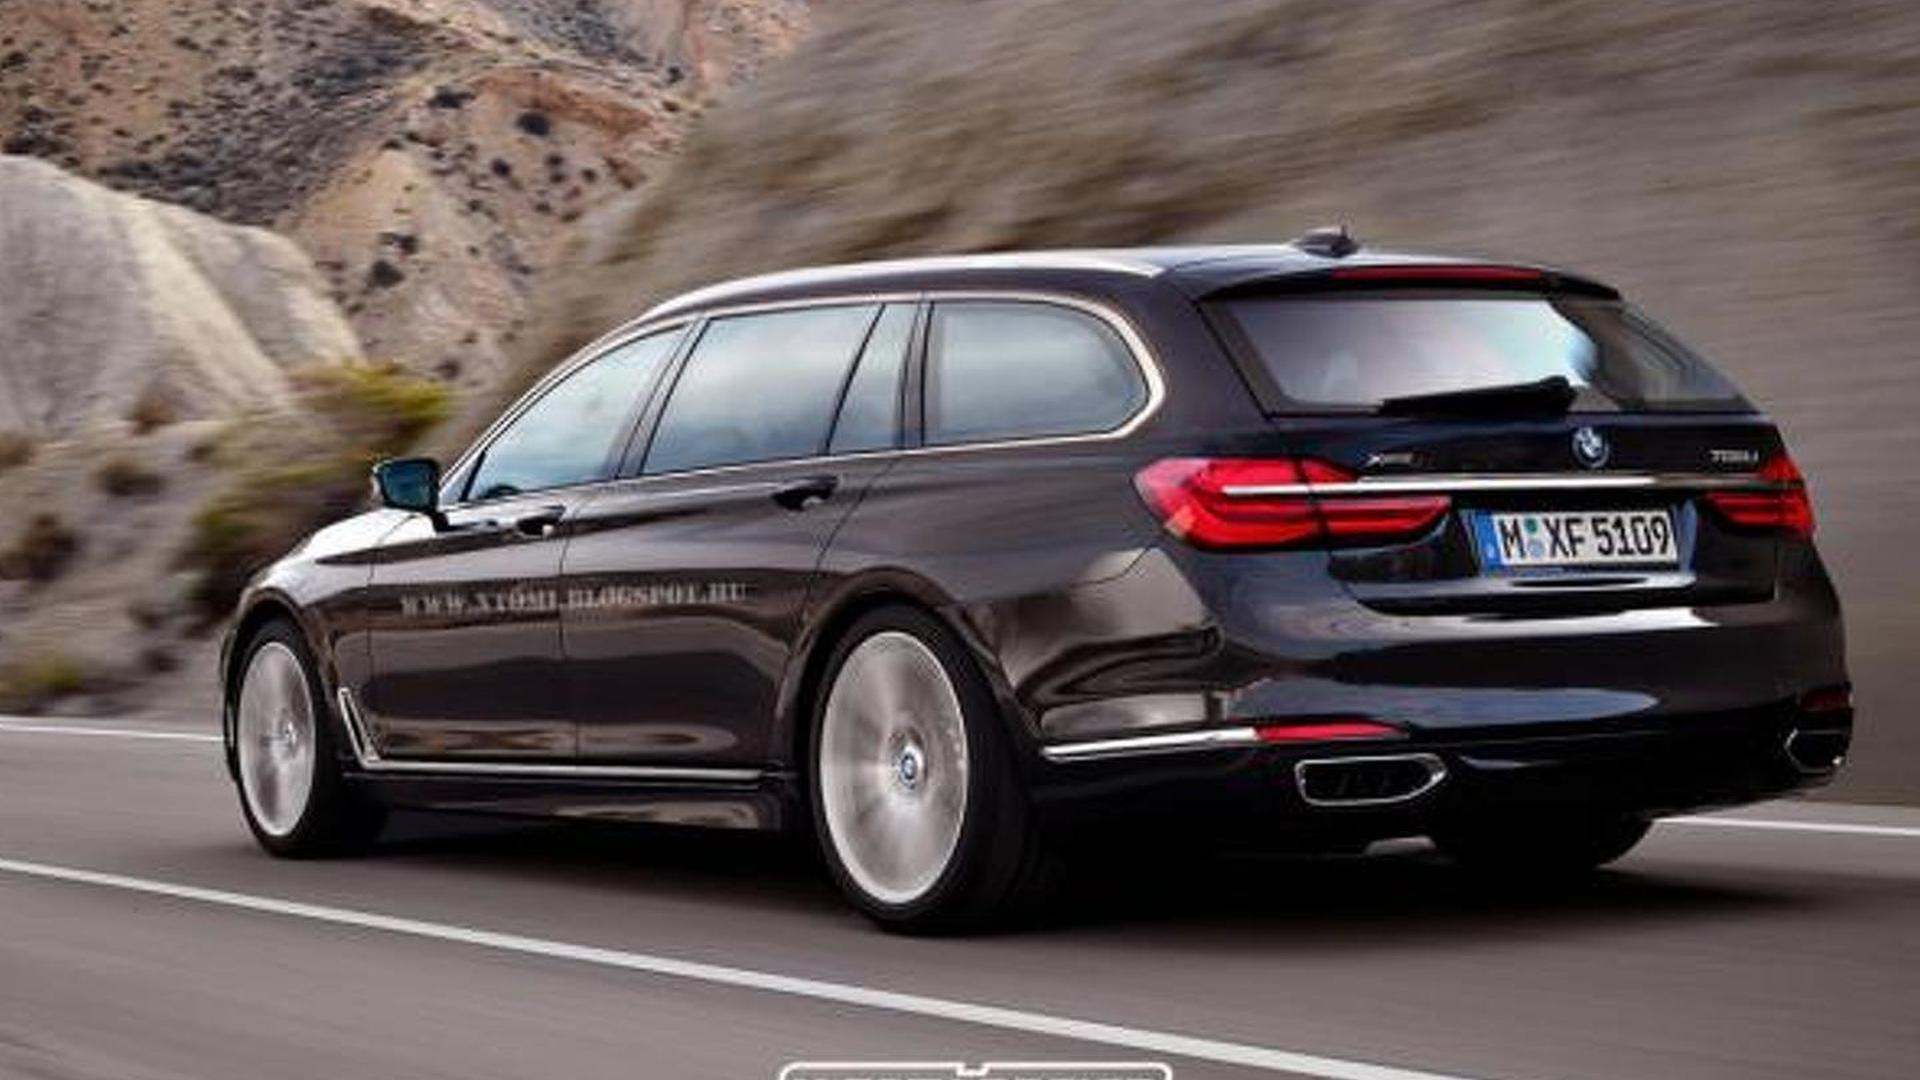 2016 Bmw 7 Series Rendered In M7 And Touring Guises